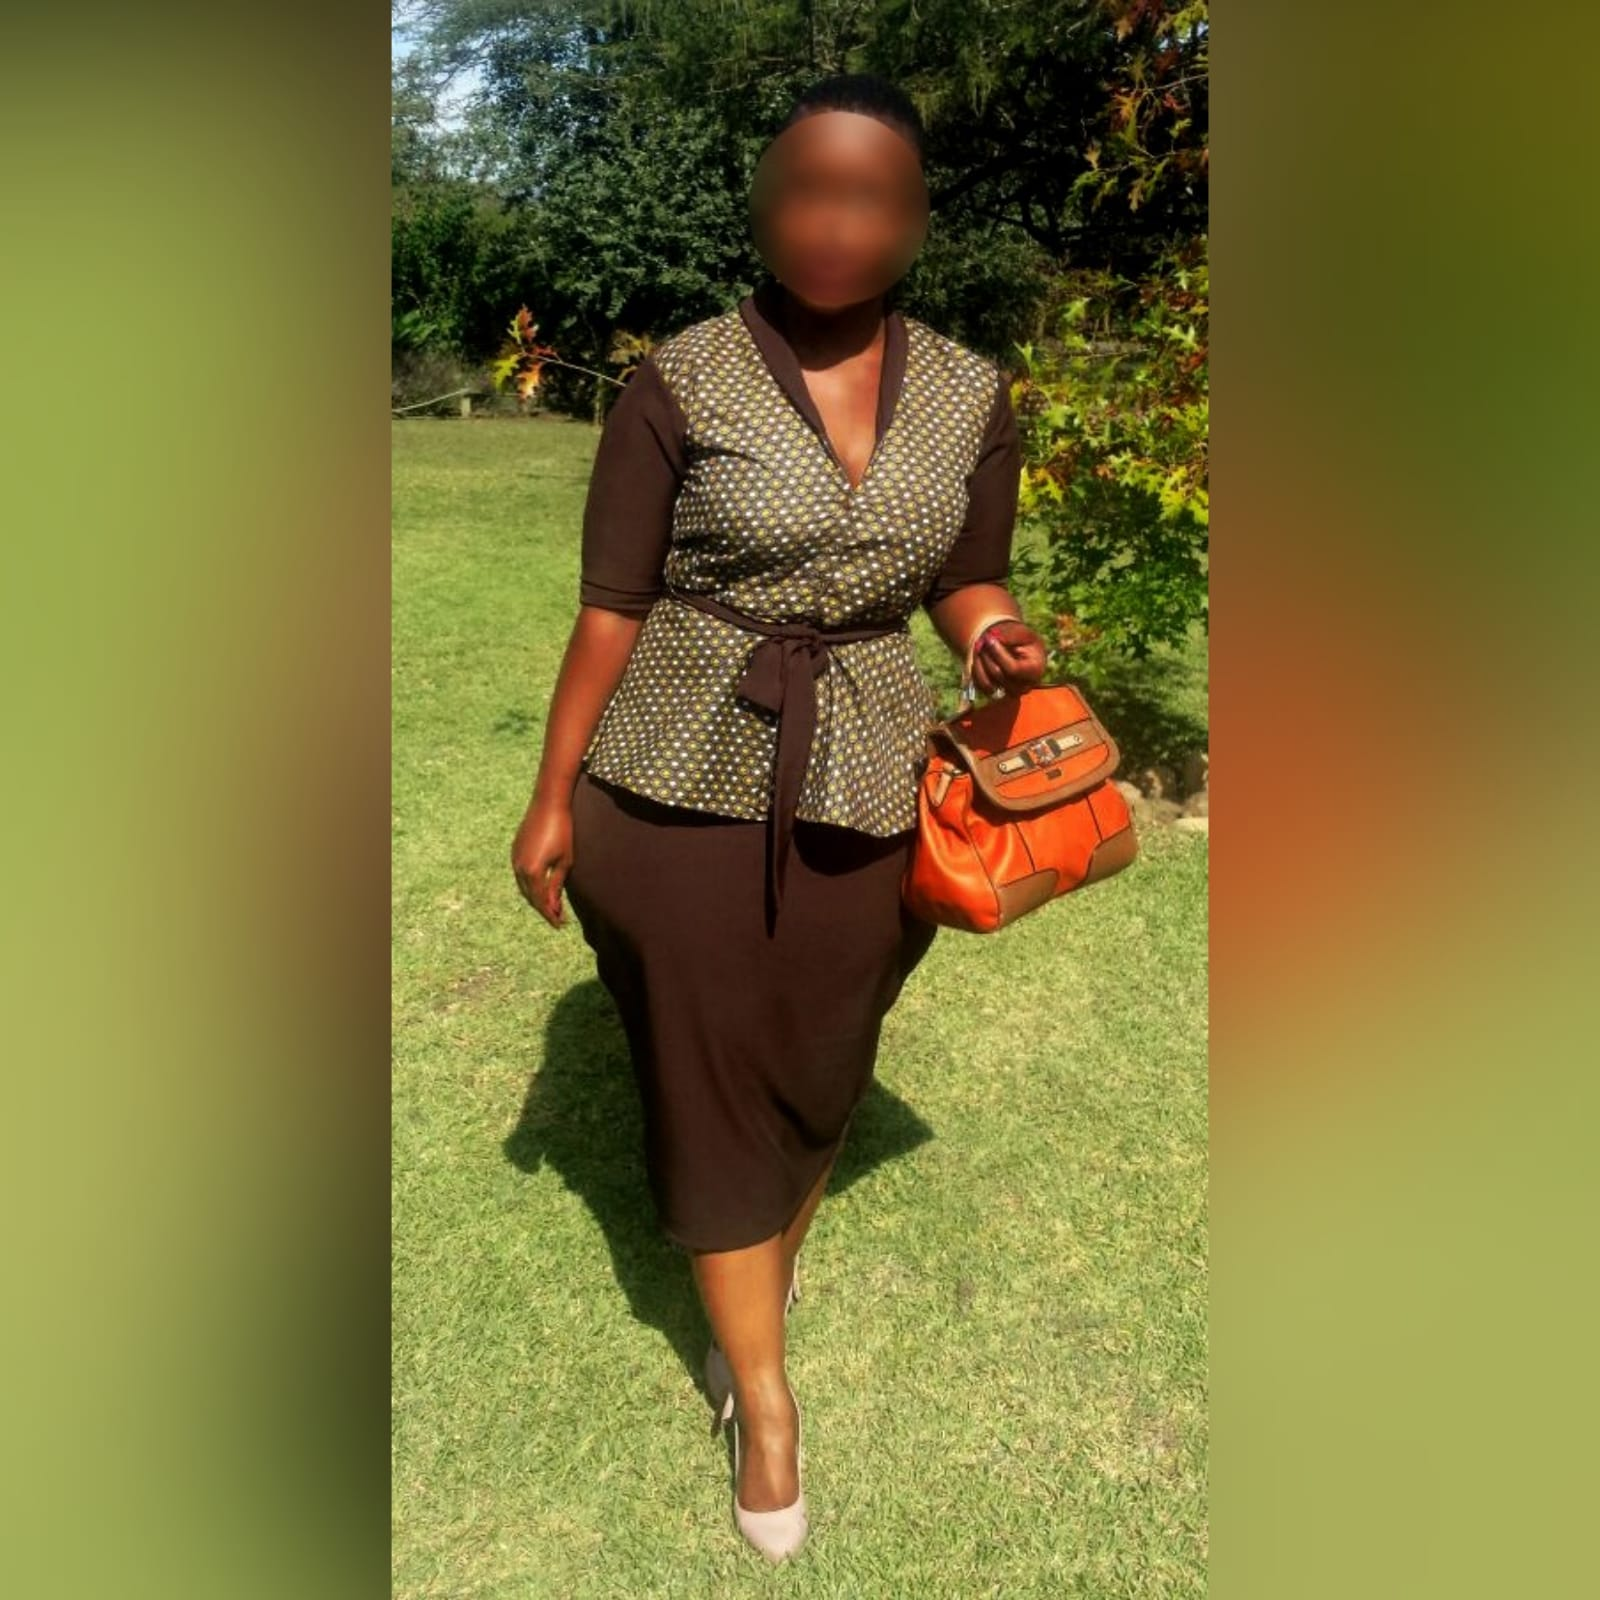 Xhosa traditional wear blouse and matching brown pencil skirt 1 a pencil skirt below the knee with a back slit. With a xhosa traditional blouse. Blouse with sleeves, collar and belt in brown matching the skirt.